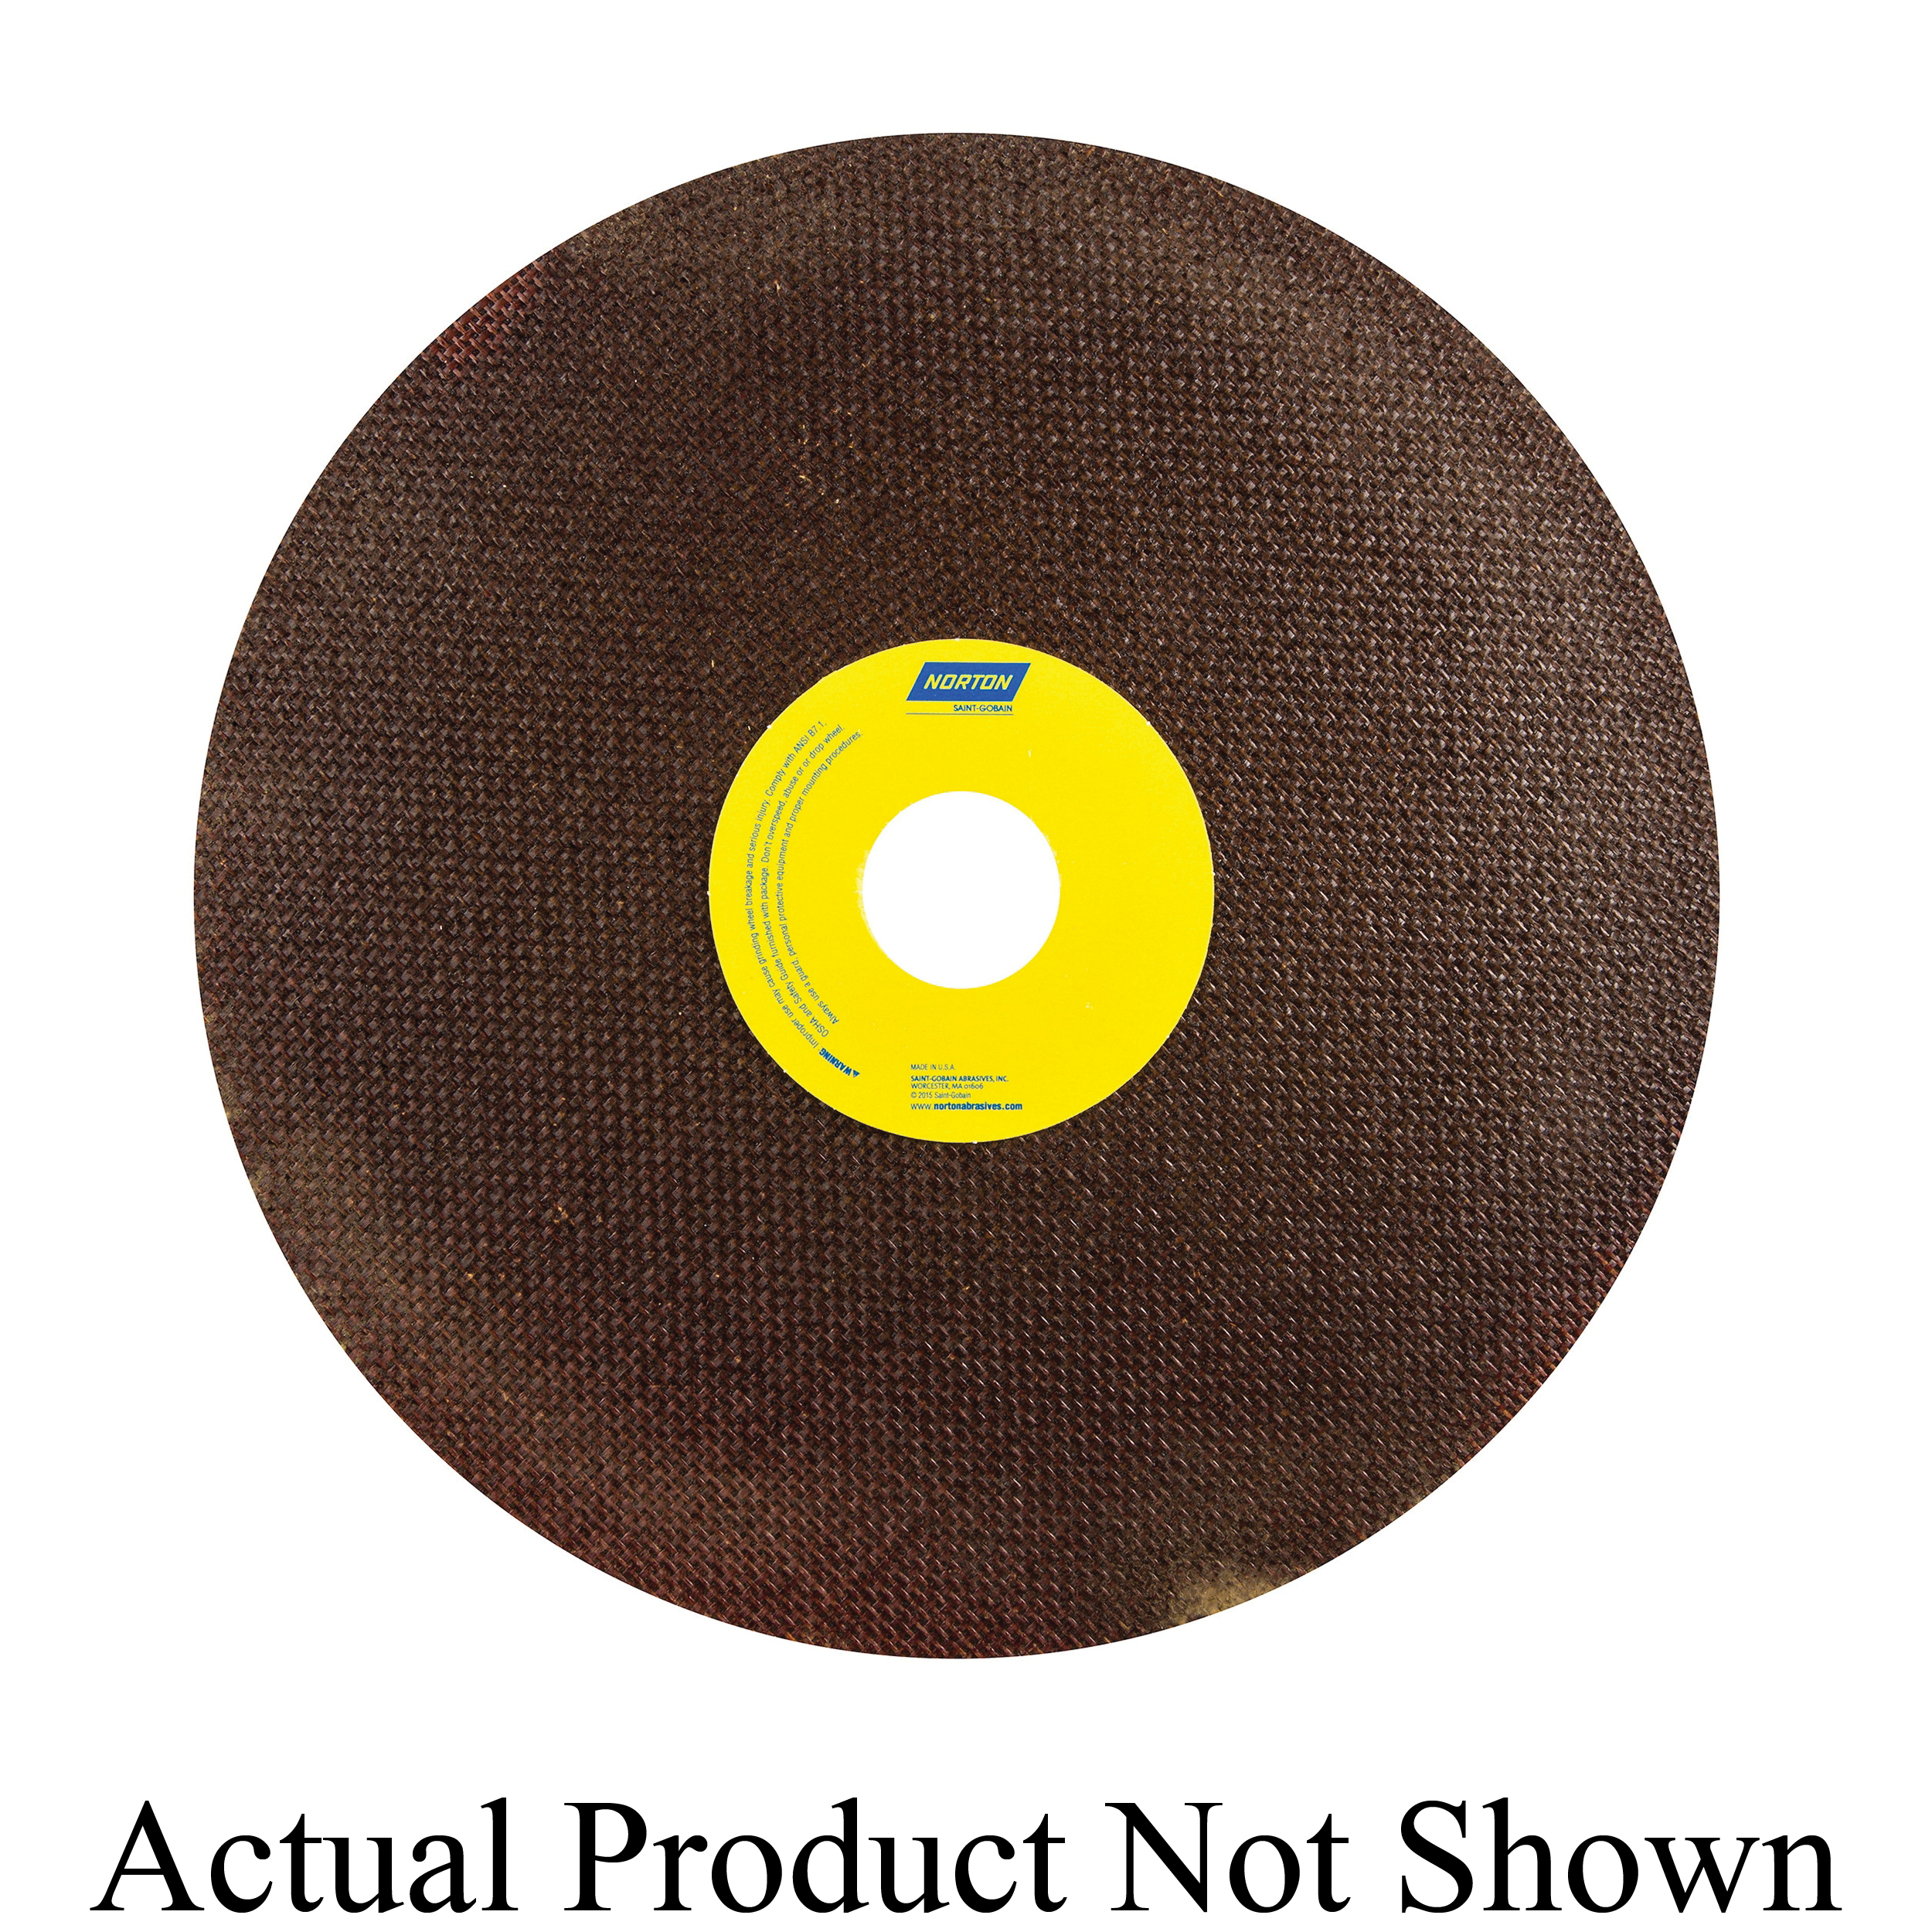 Norton® 66253149186 OBNA2 Toolroom Cut-Off Wheel, 10 in Dia x 0.06 in THK, 1-1/4 in Center Hole, 60 Grit, Aluminum Oxide Abrasive